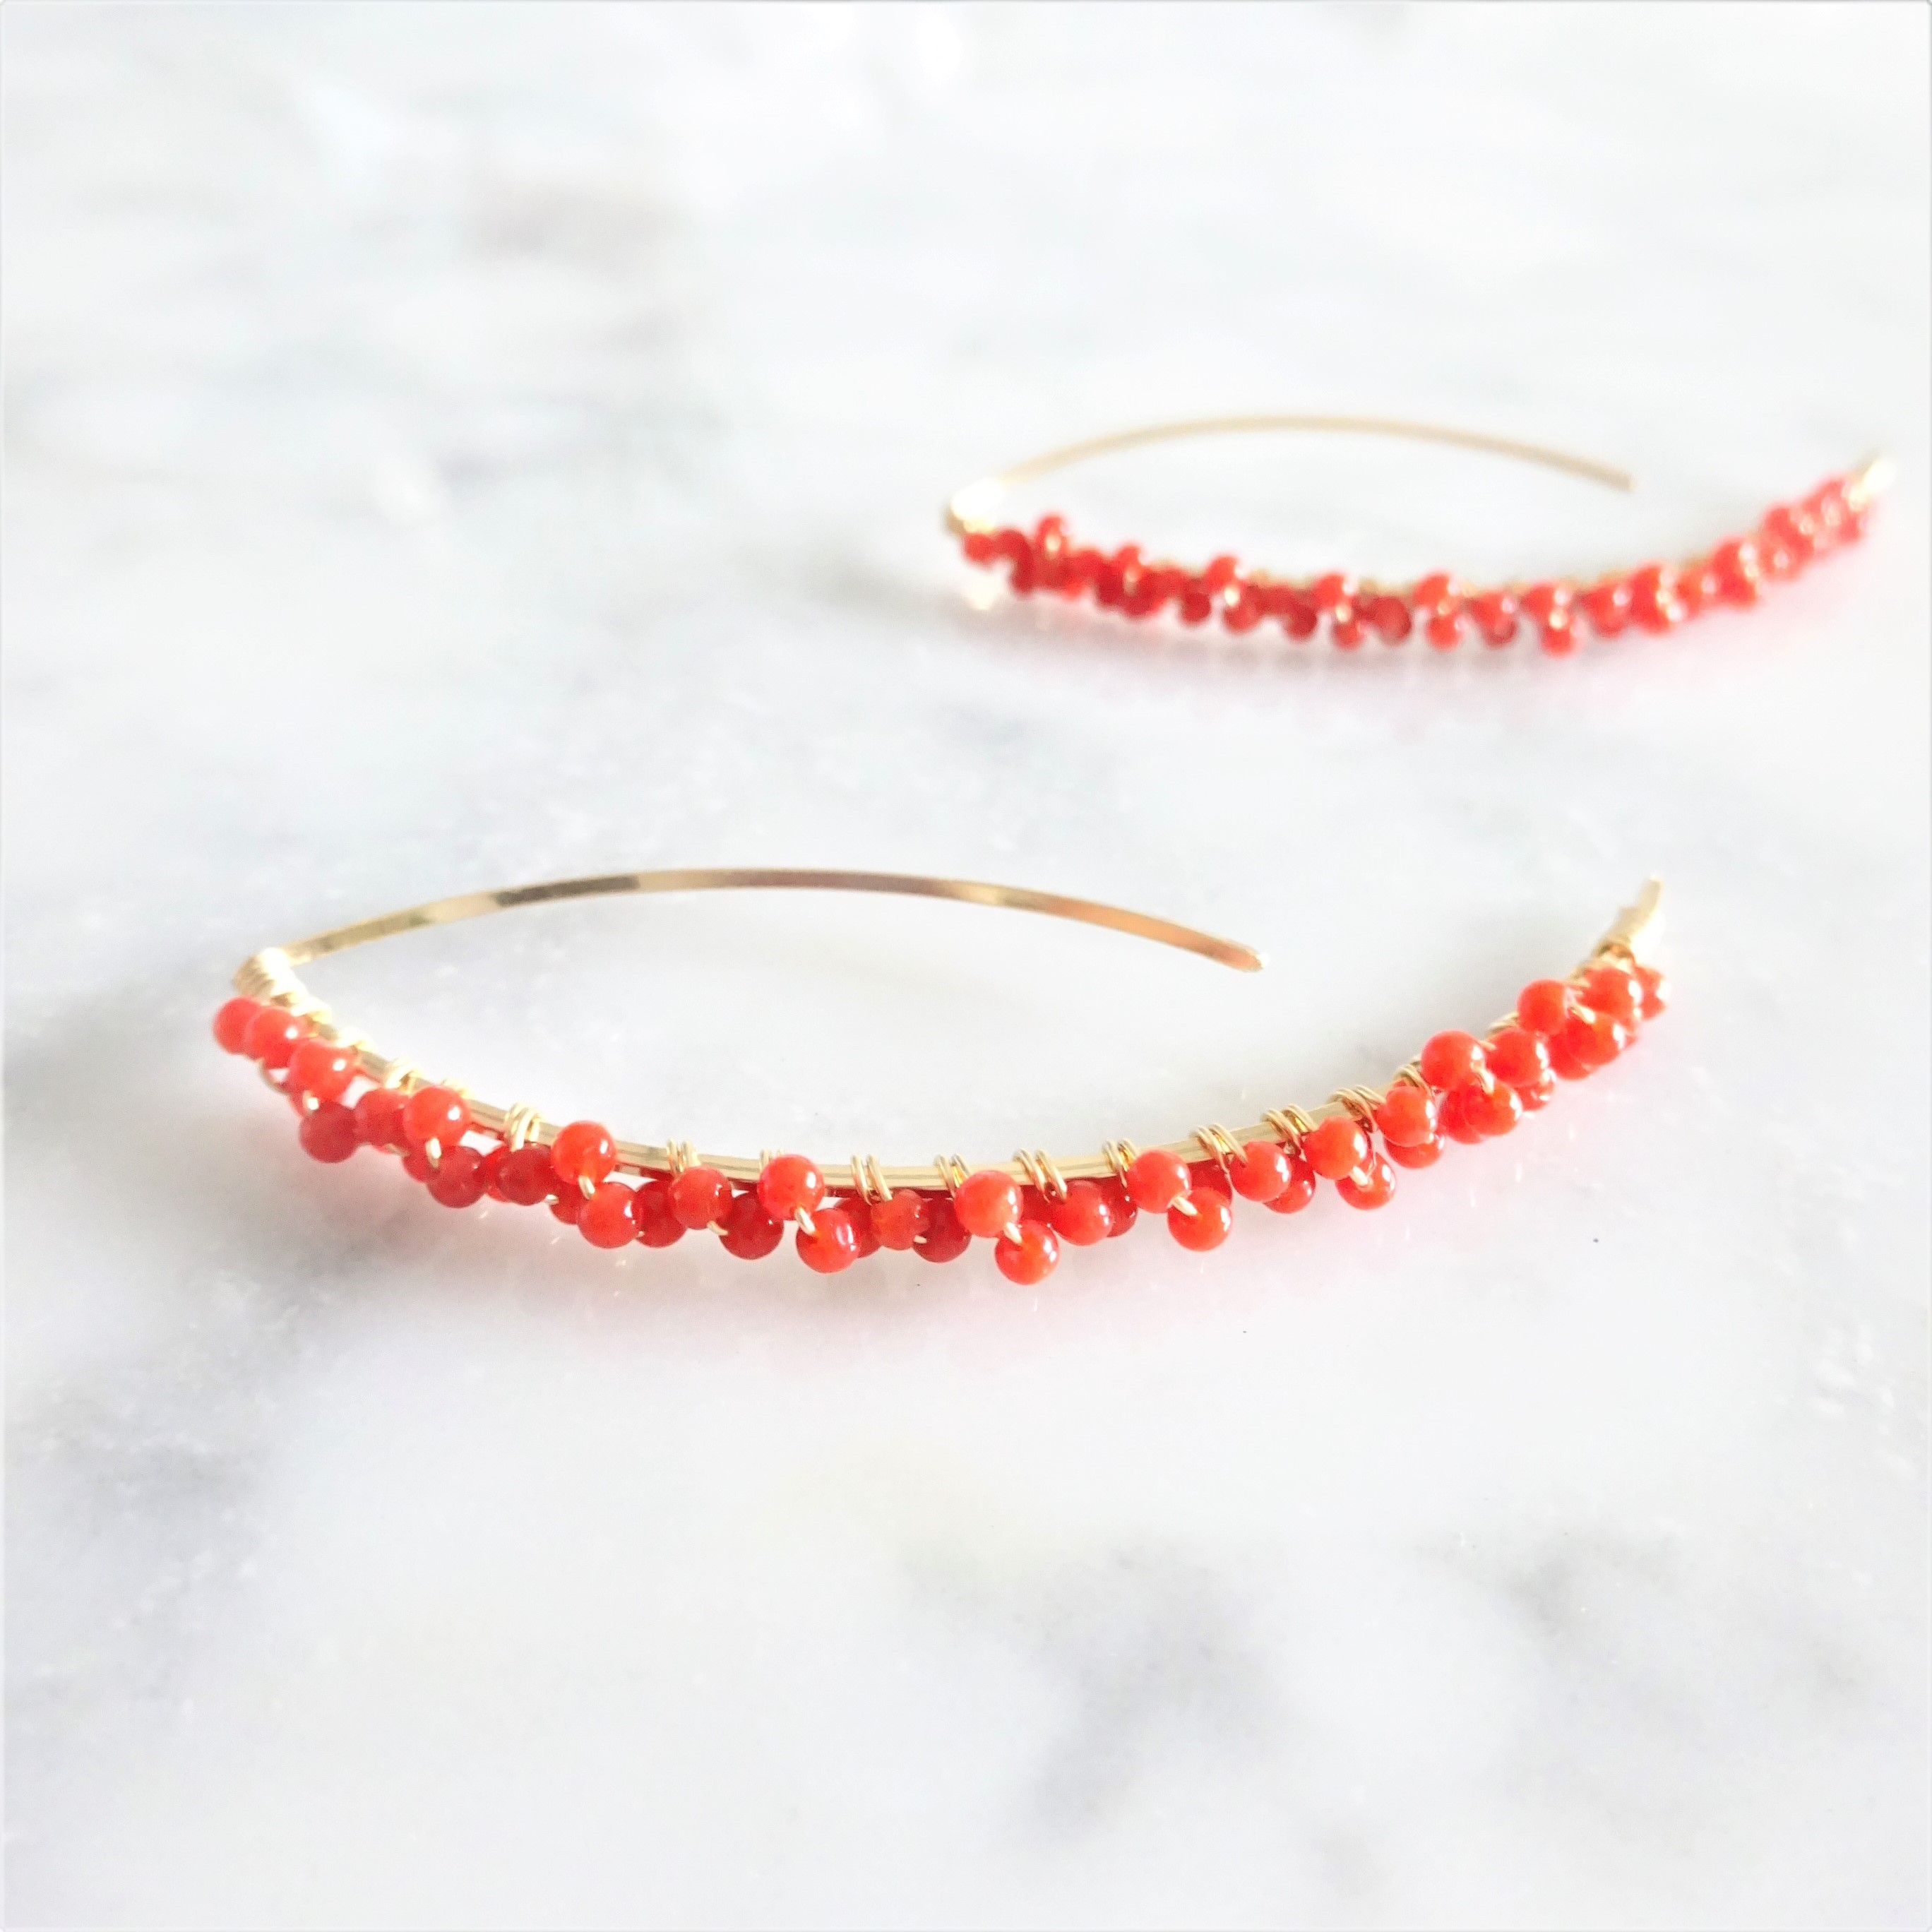 送料無料 14kgf*Red Coral from Italy marquis pierced earring